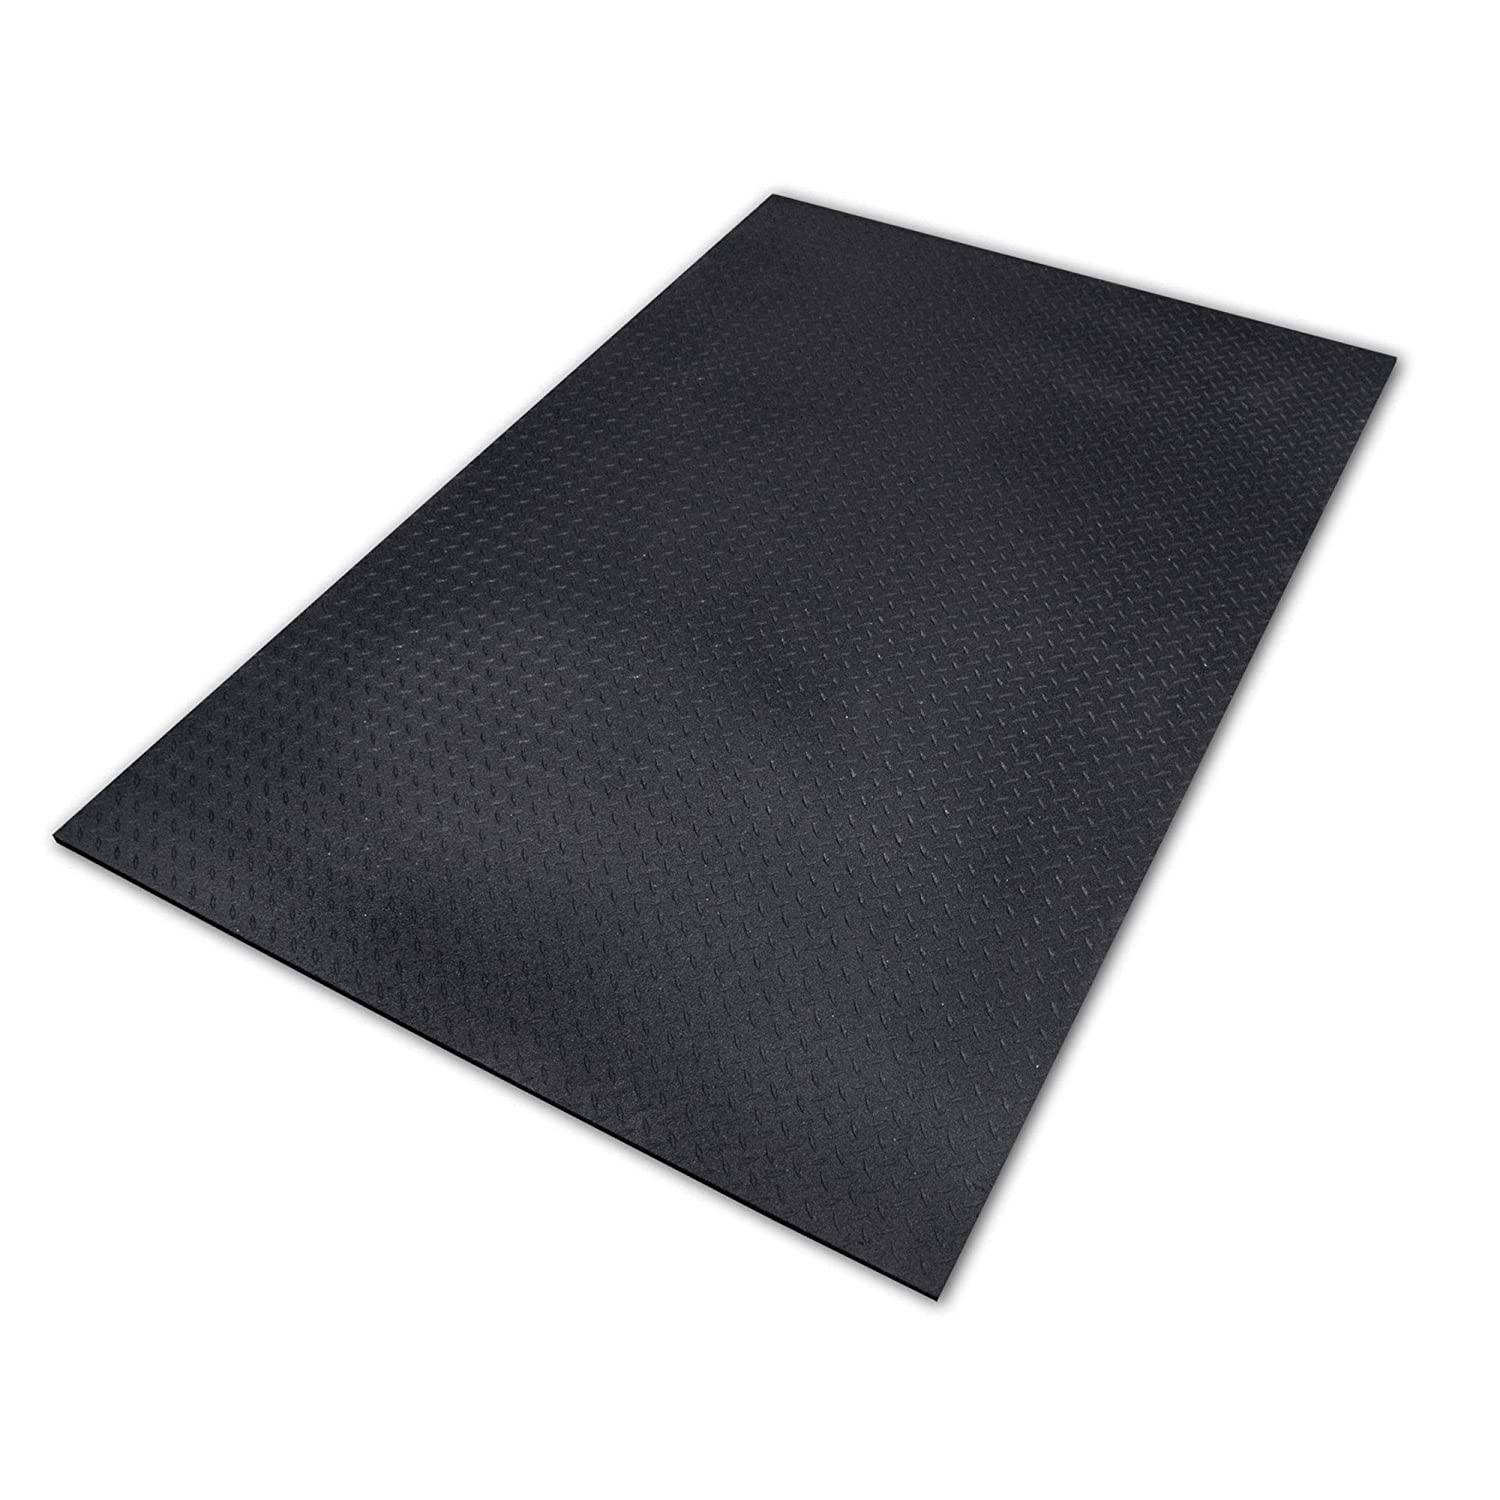 Equine Stall Mat, Bed Mat, Barn Flooring, Kennel Floors – Heavy Duty Rubber Mat - Buy More and Save!